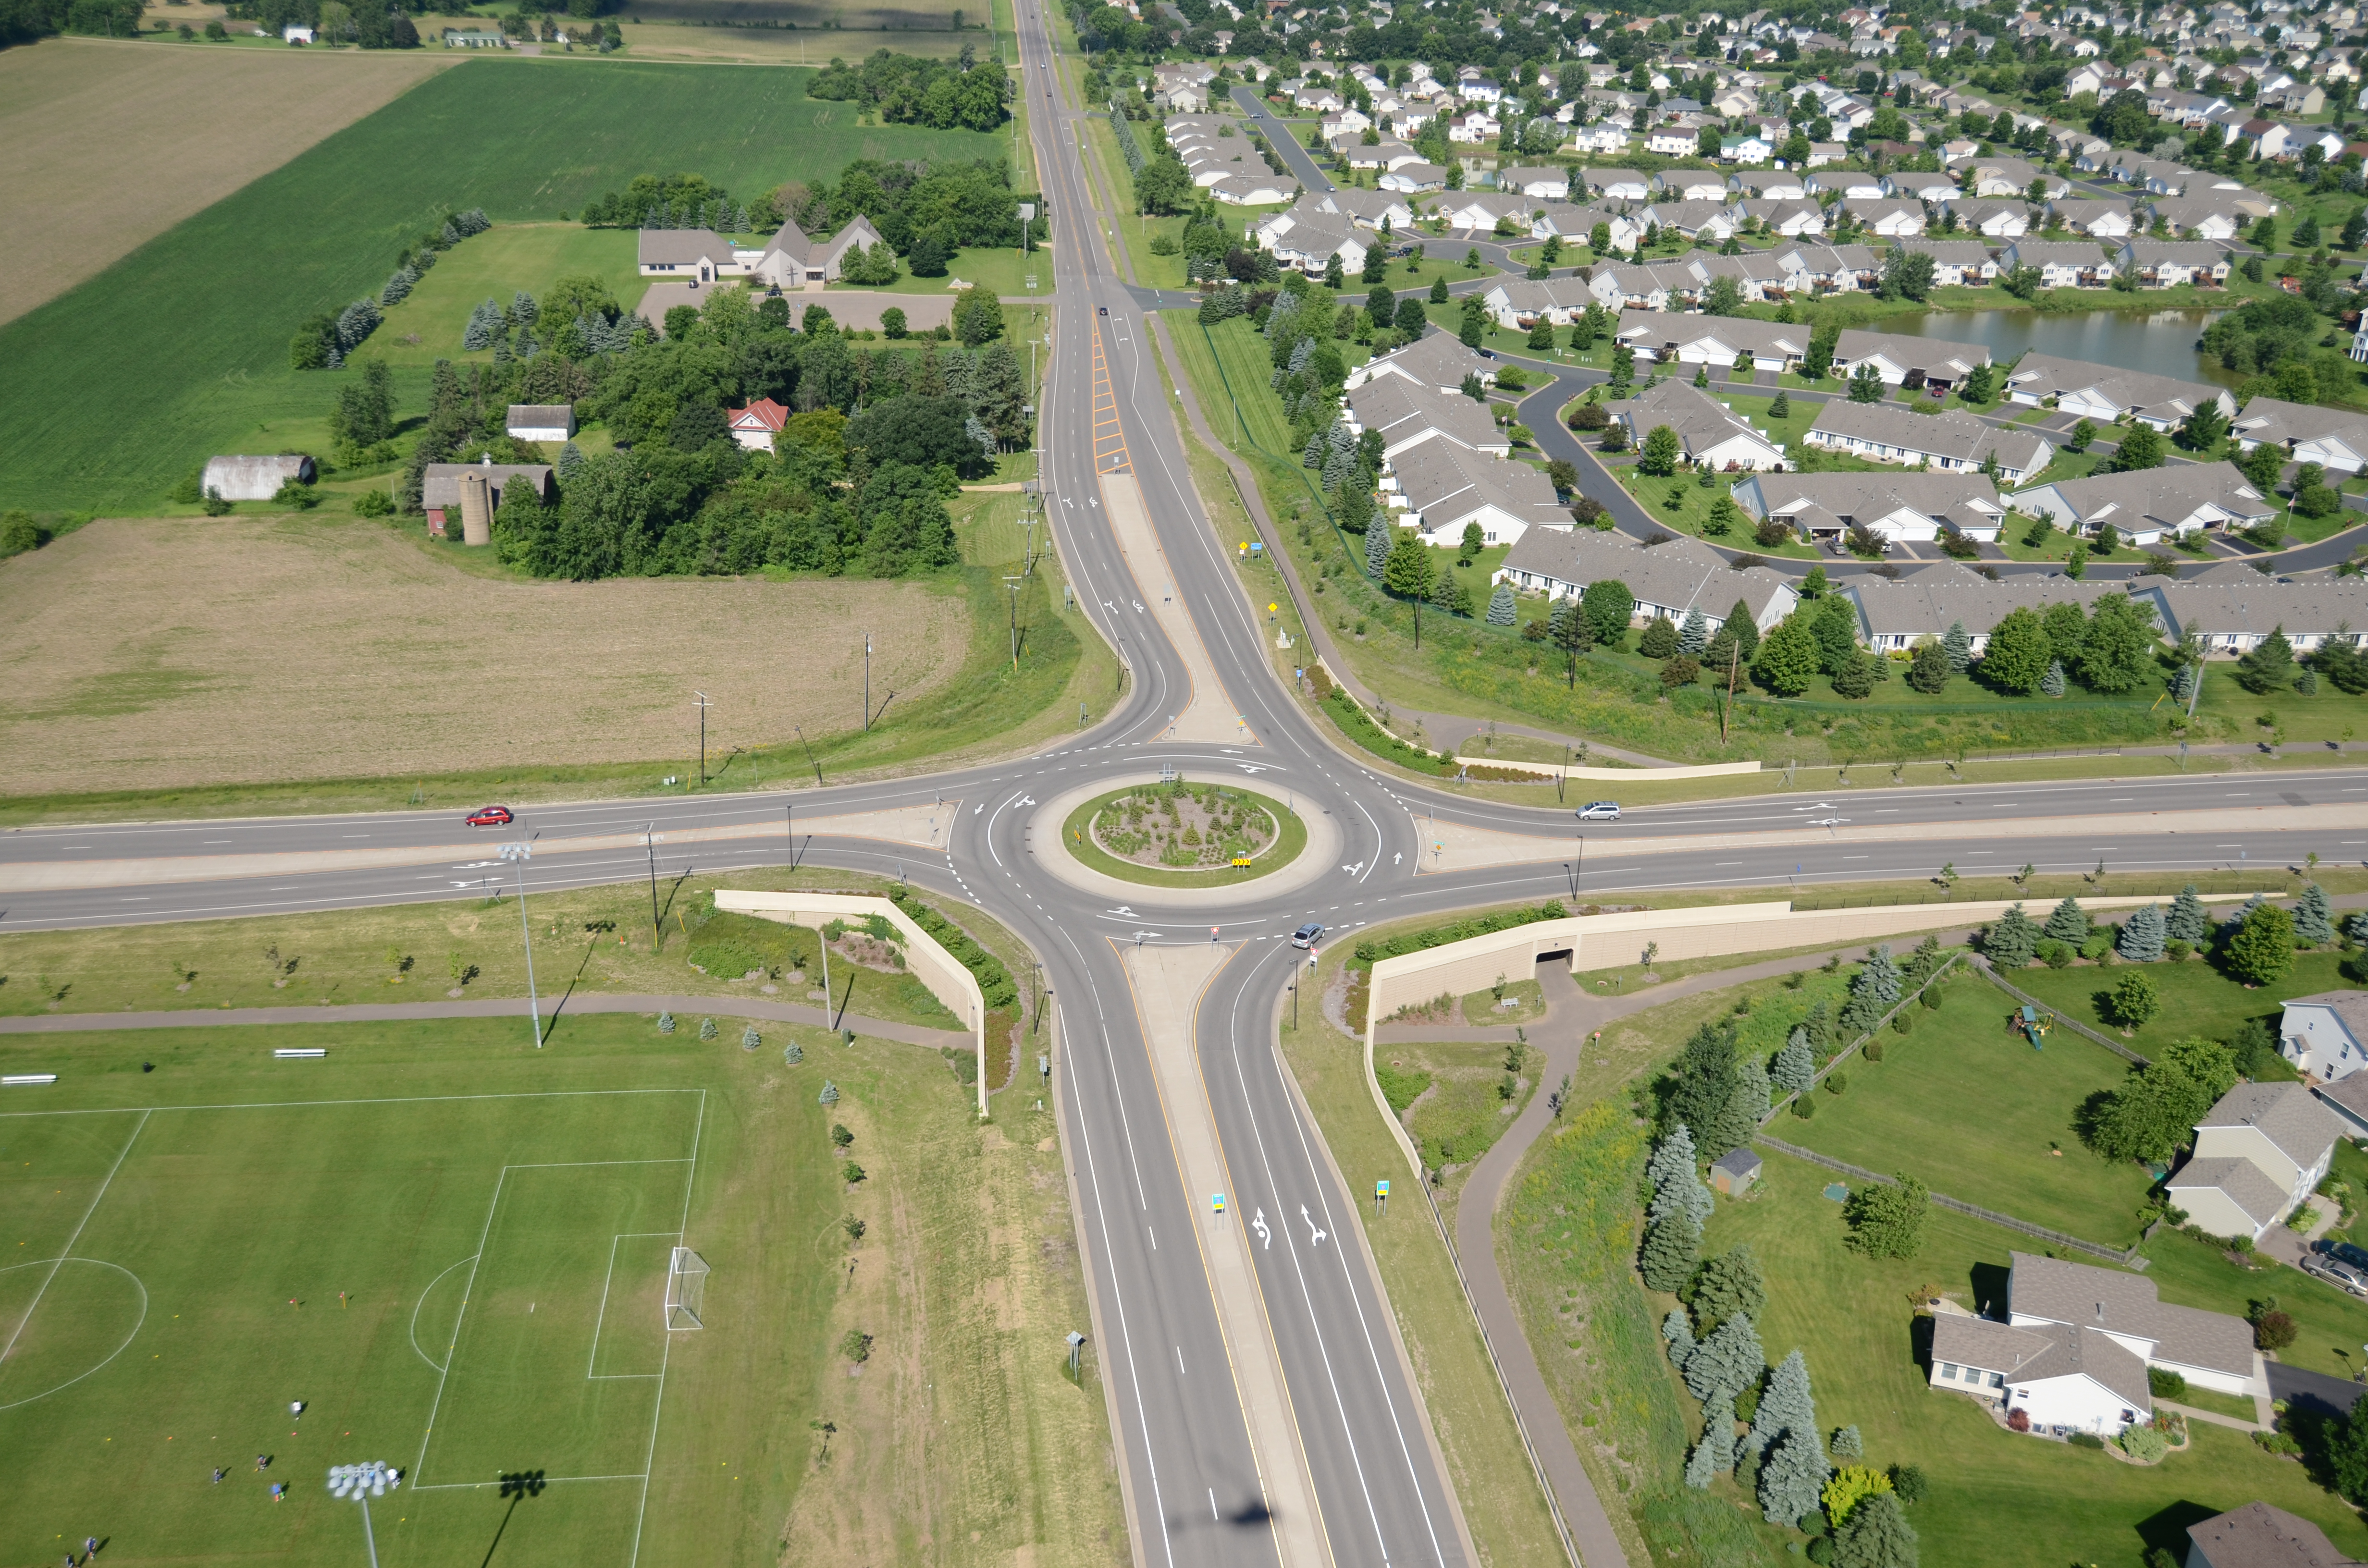 1438 CSAH 18 at CSAH 13 Radio Dr Roundabout